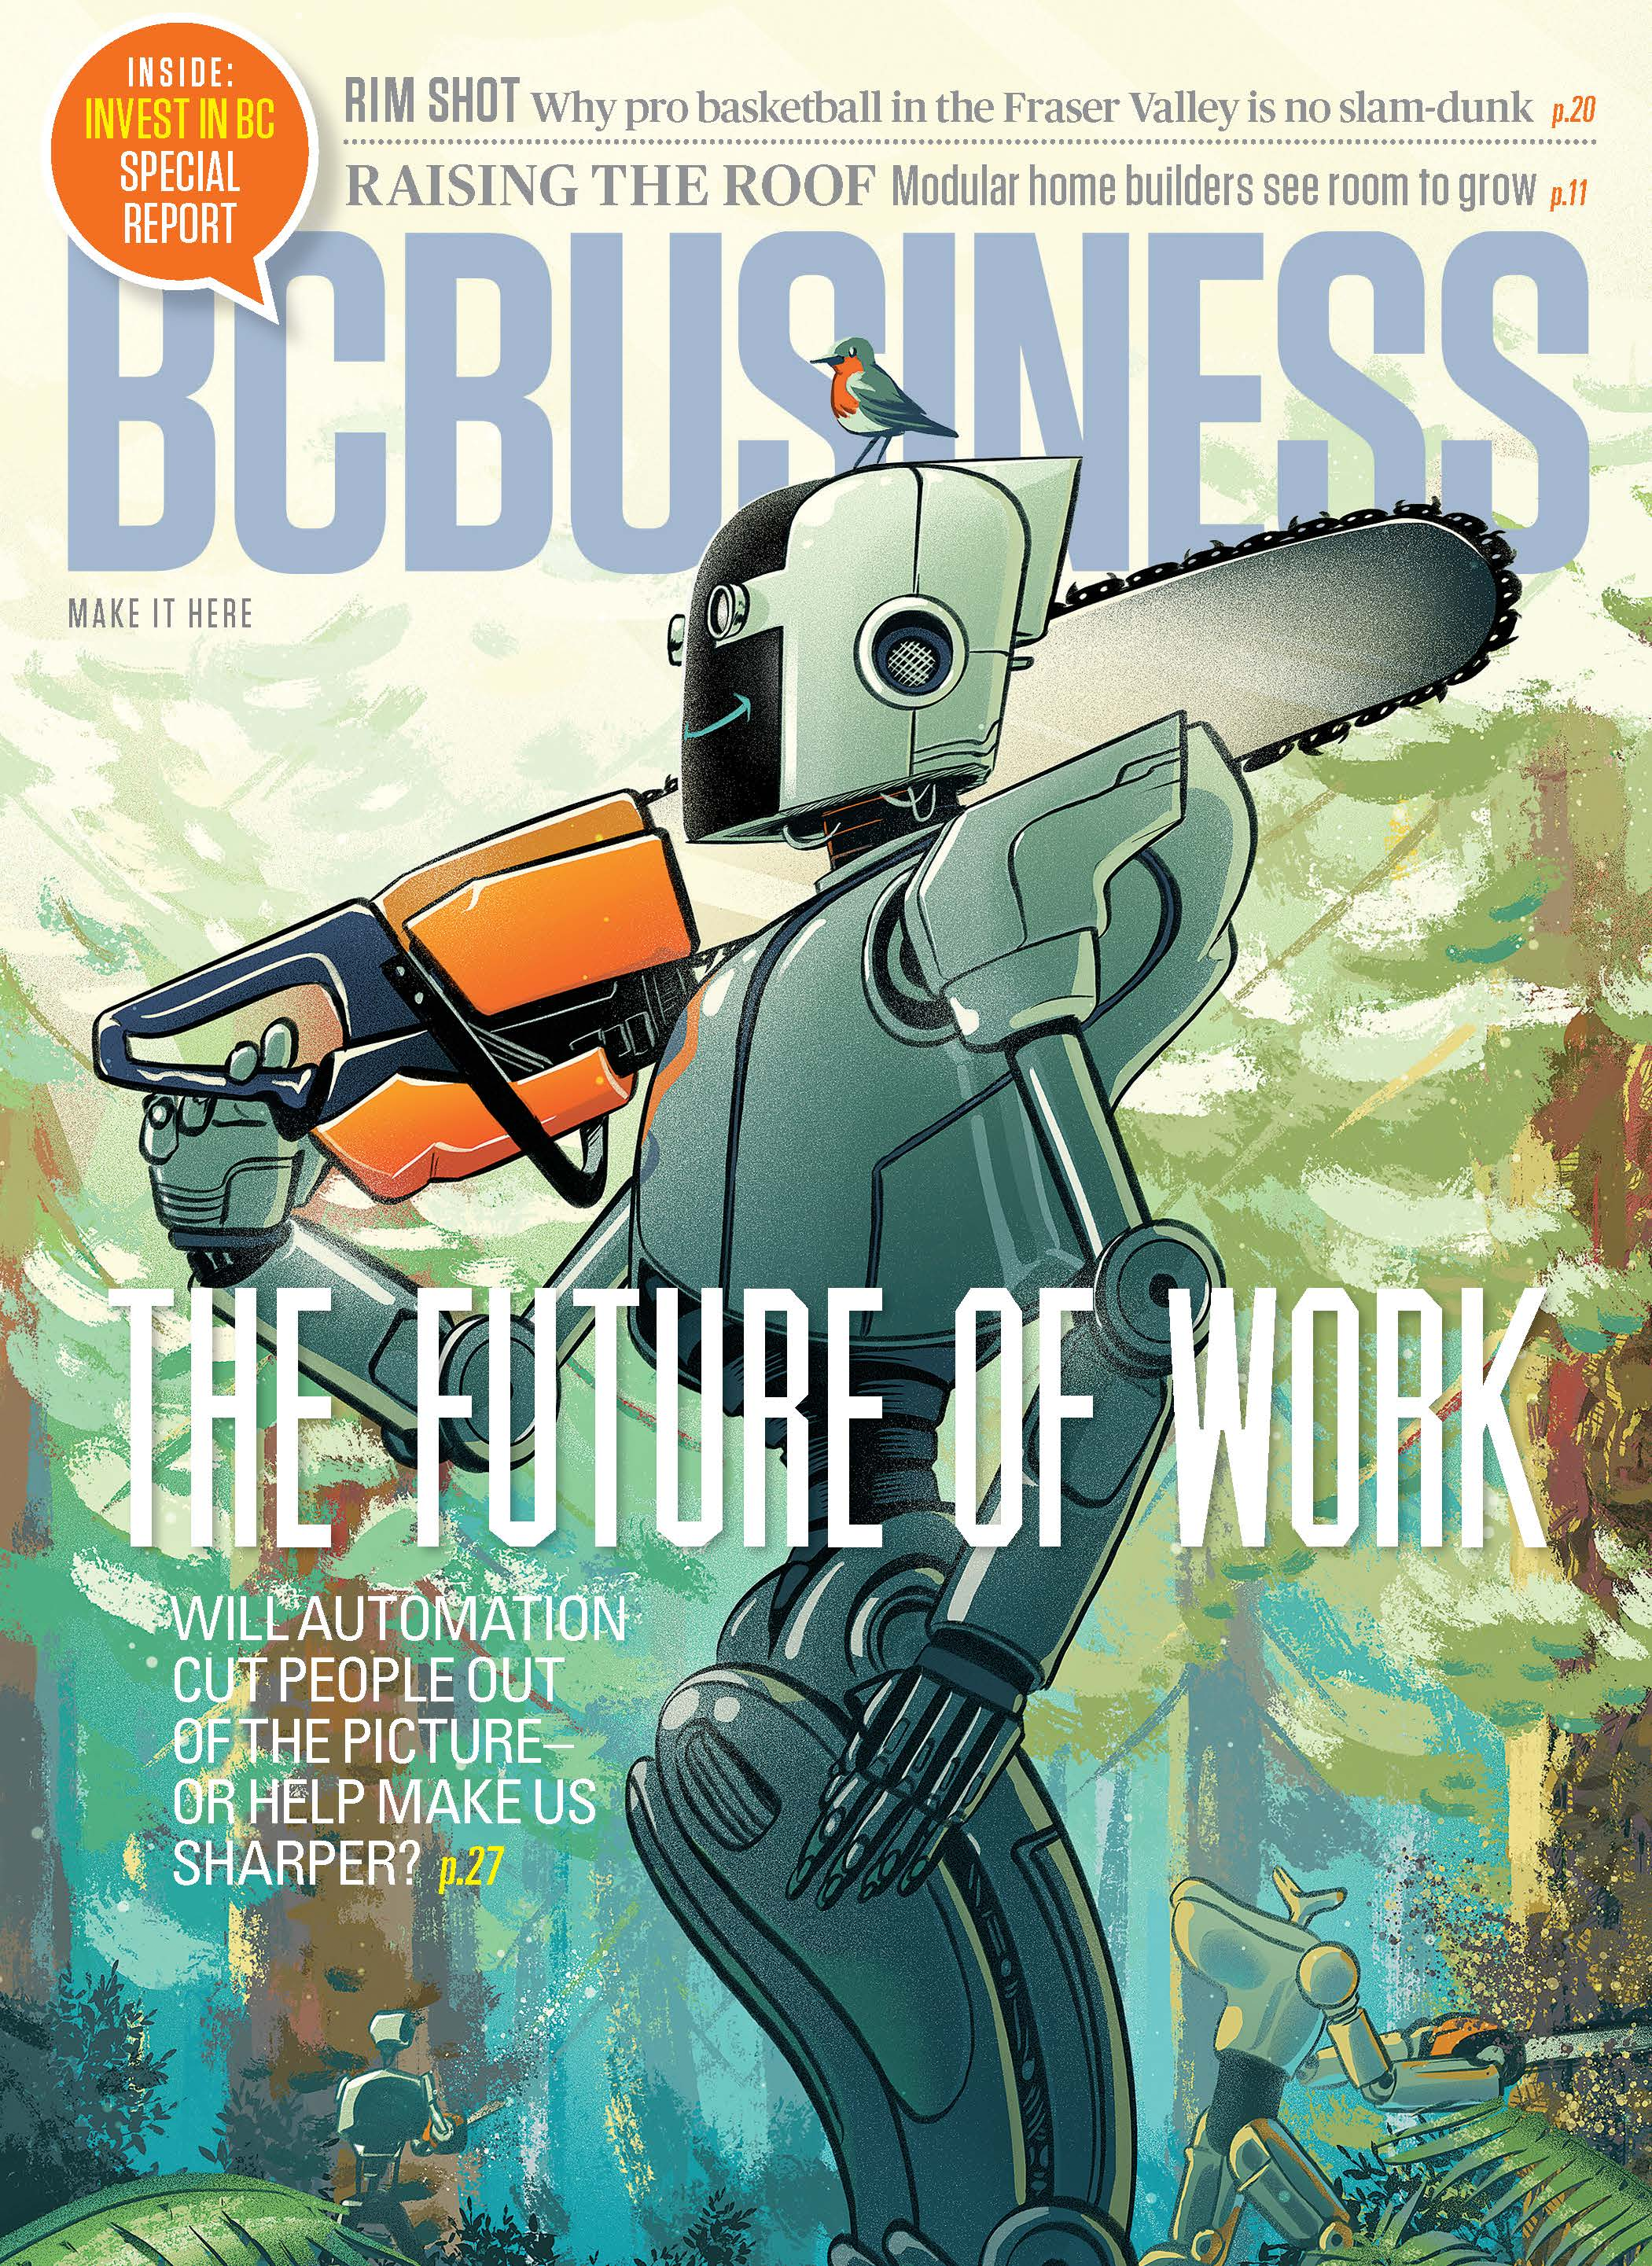 May 2019 - BCBusiness